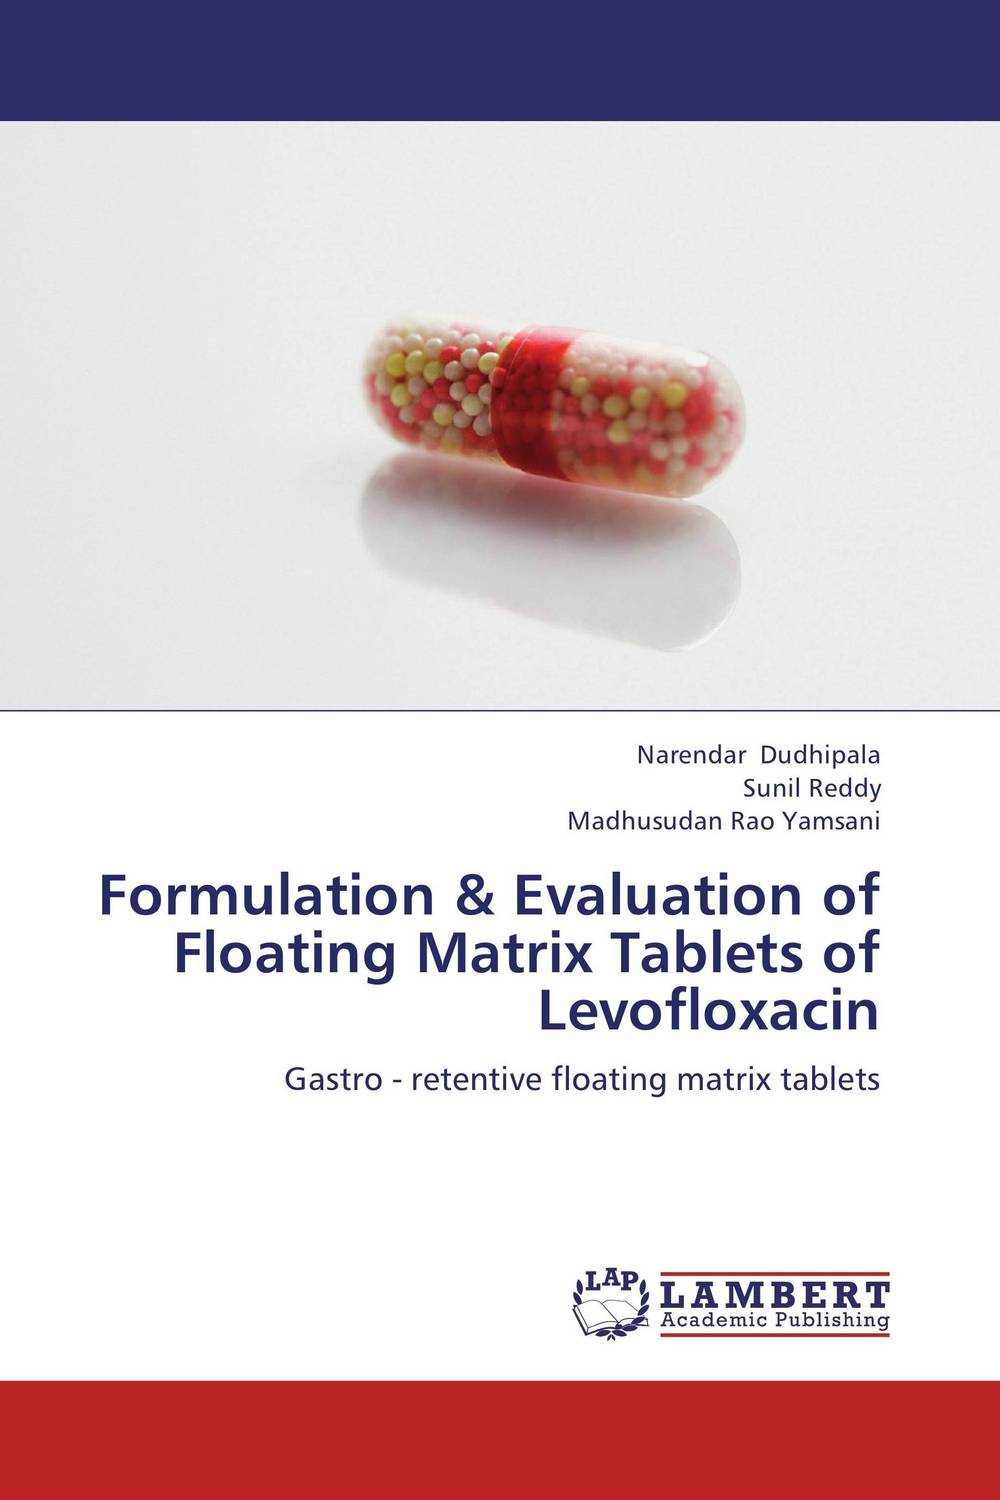 Formulation & Evaluation of  Floating Matrix Tablets of Levofloxacin amita yadav kamal singh rathore and geeta m patel formulation evaluation and optimization of mouth dissolving tablets